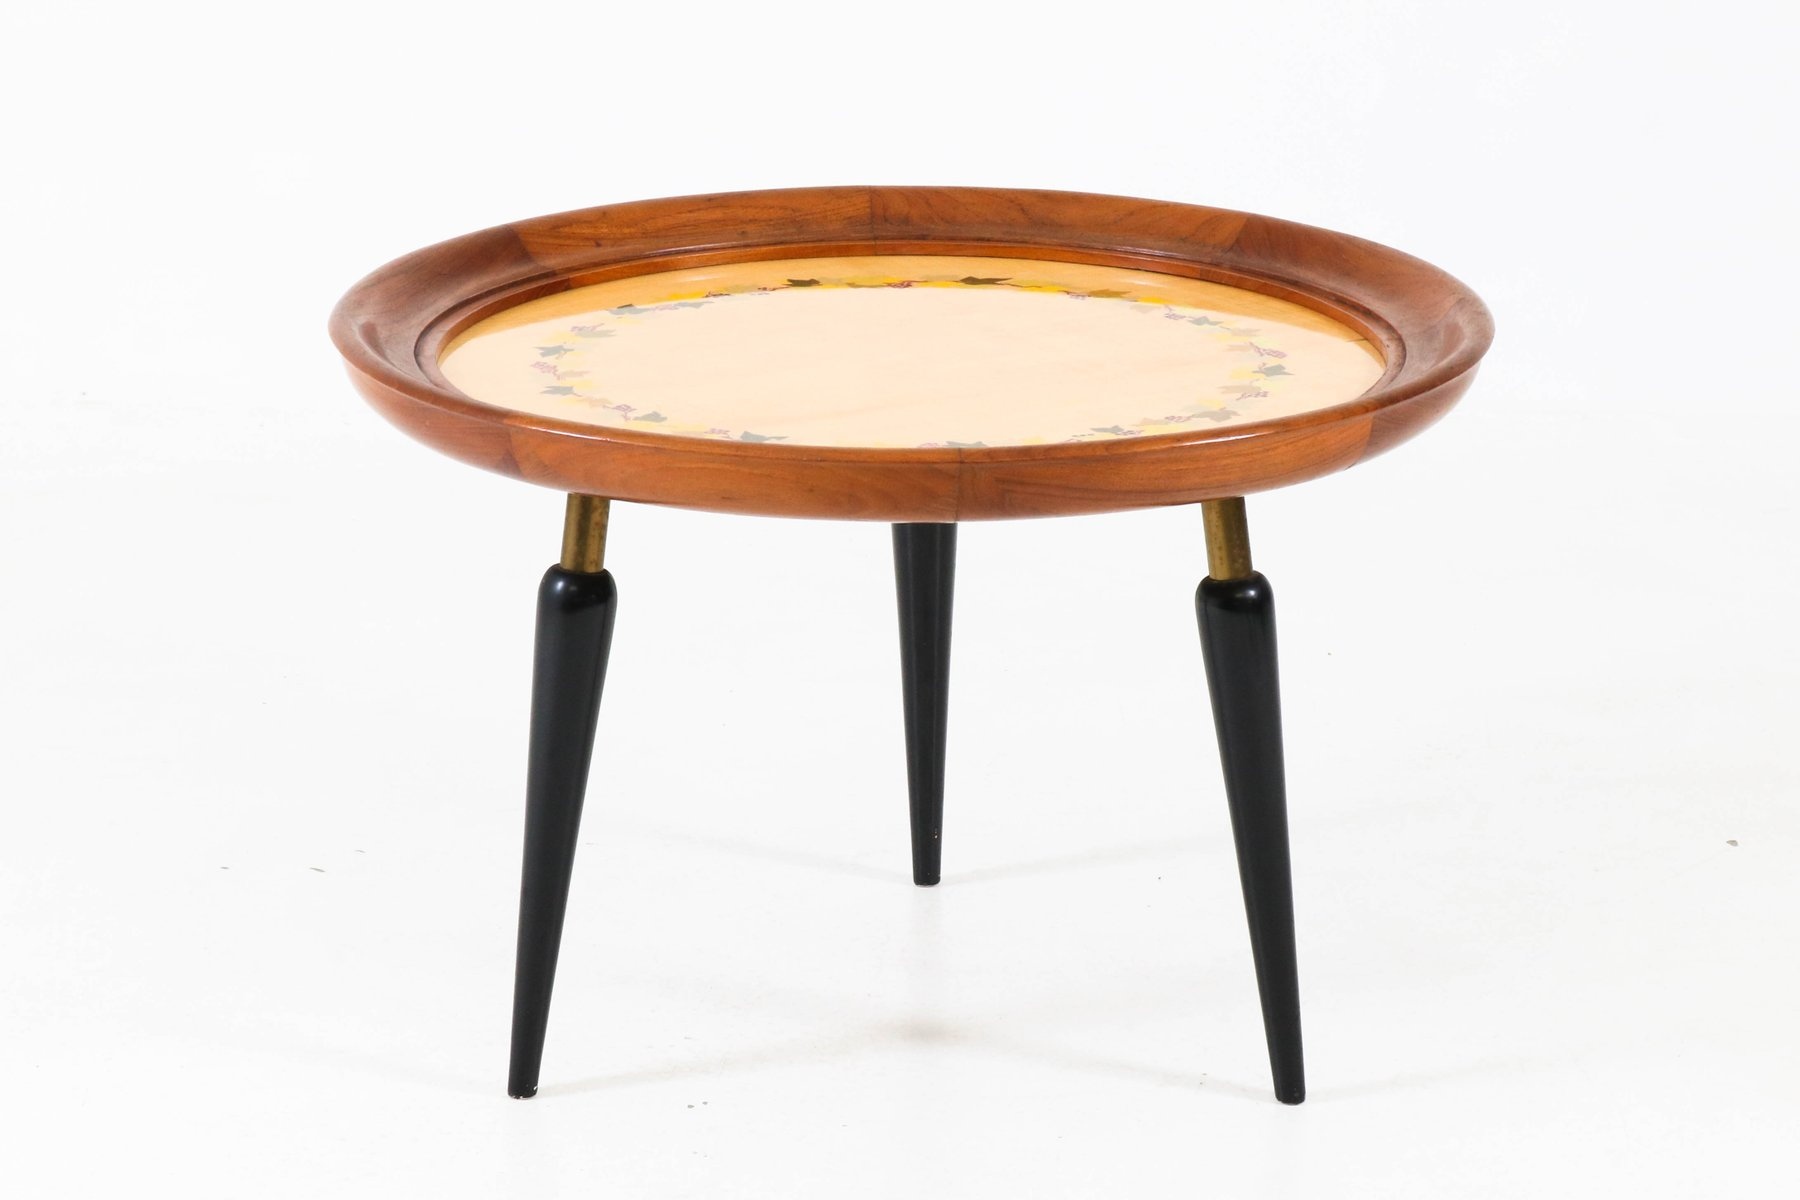 Italian MidCentury Modern Fruitwood Coffee Table with Inlay 1950s